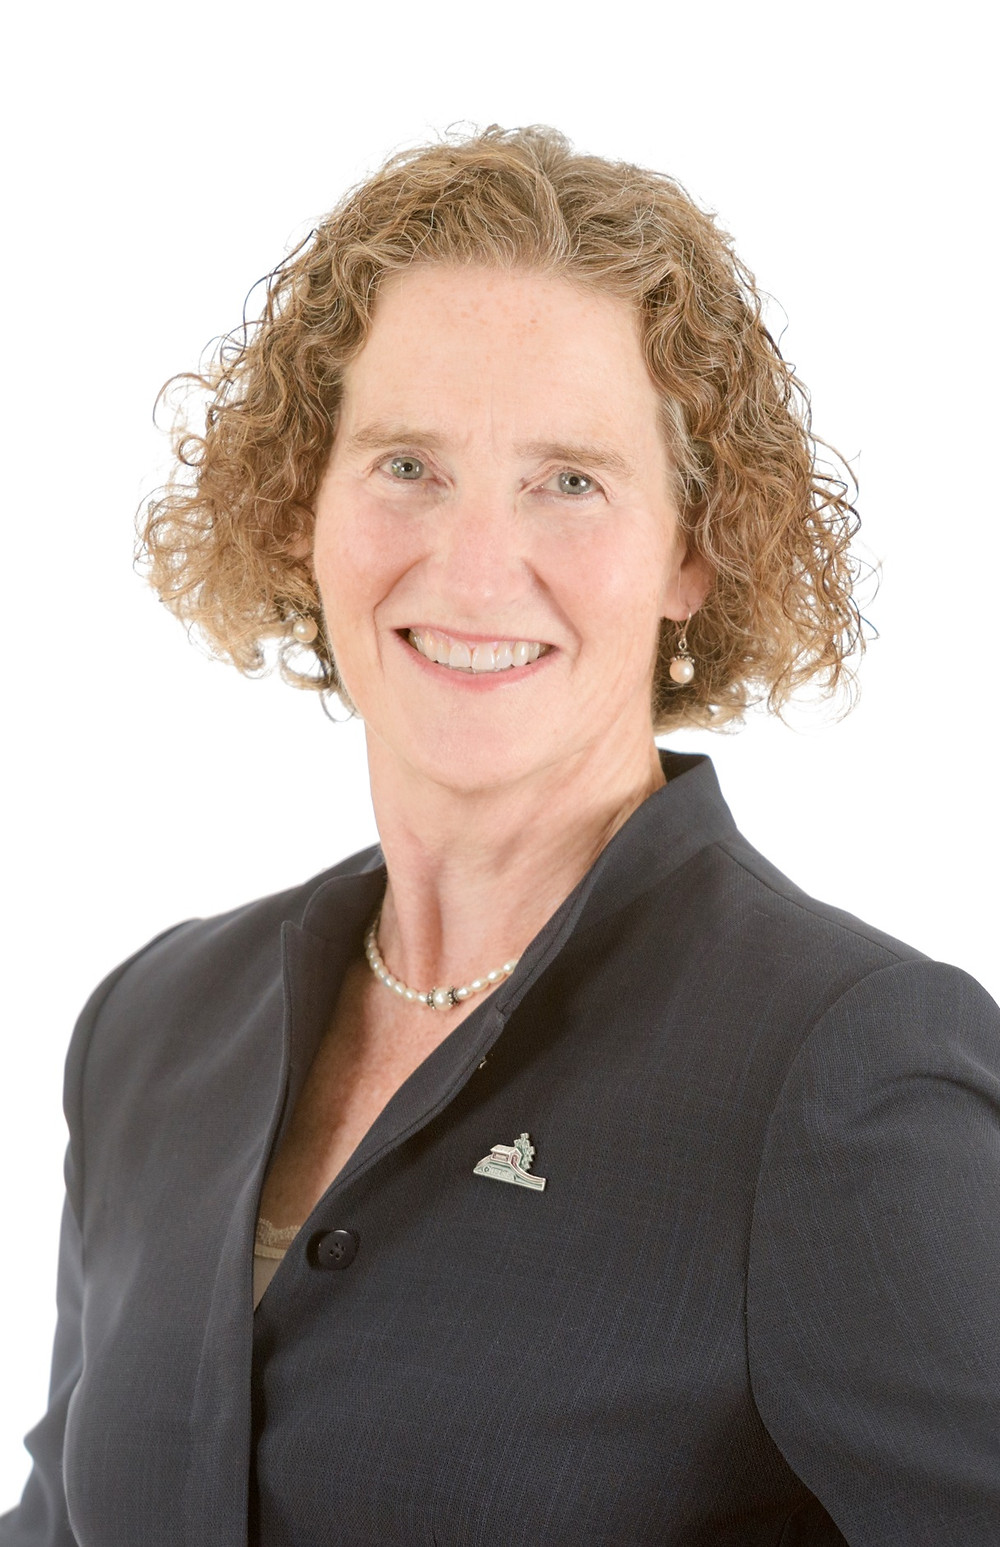 Chelsea Mayor Caryl Green will run for MRC des Collines warden this fall instead of rerunning for mayor. Low Down file photo